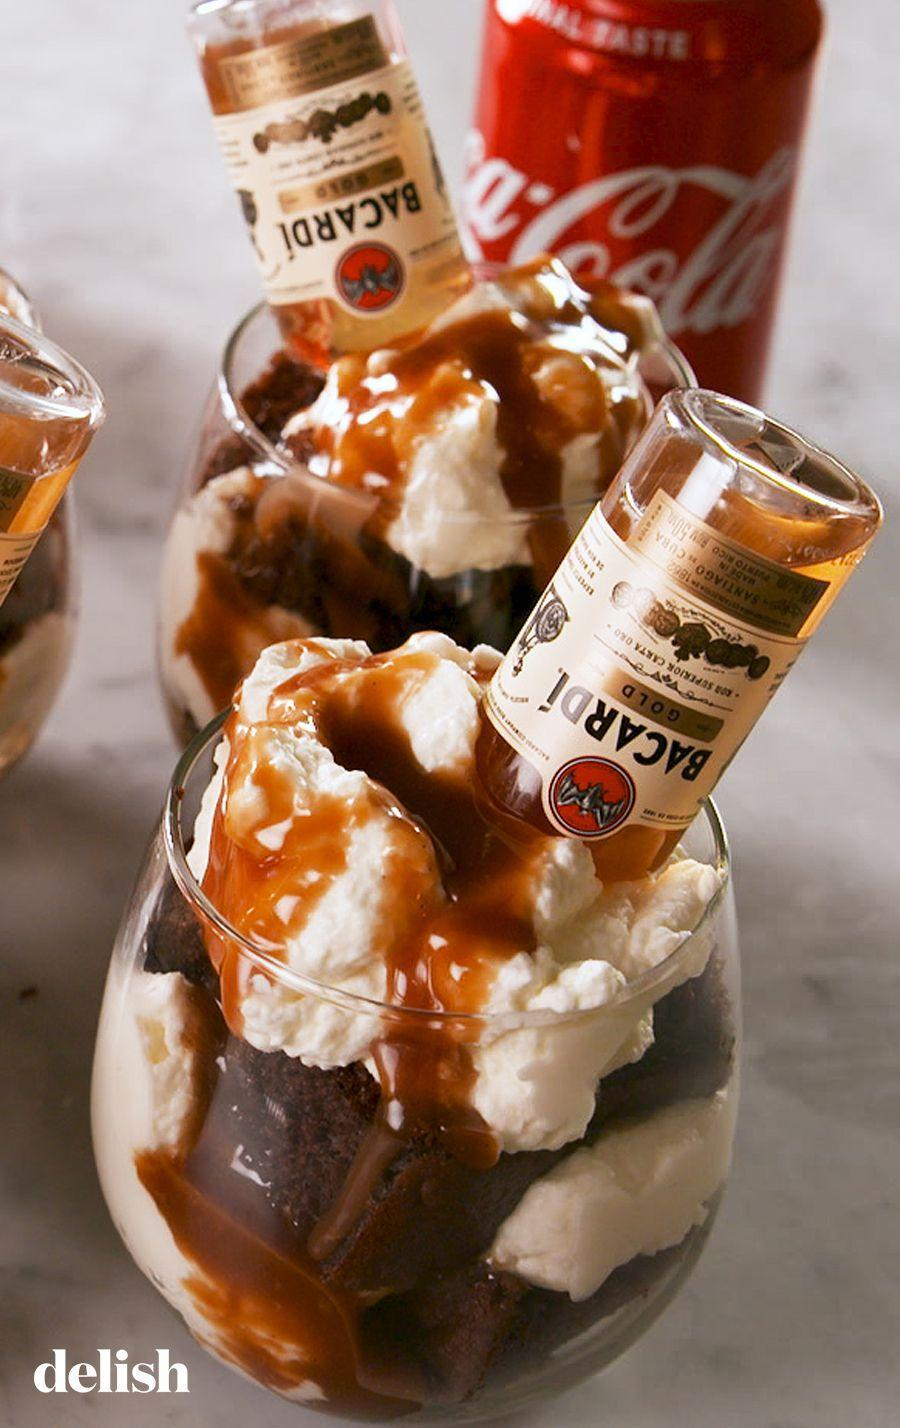 """<p>Adorably small, deliciously boozy.</p><p>Get the recipe from <a href=""""https://www.delish.com/cooking/recipe-ideas/a27472036/rum-and-coke-cakes-recipe/"""" rel=""""nofollow noopener"""" target=""""_blank"""" data-ylk=""""slk:Delish"""" class=""""link rapid-noclick-resp"""">Delish</a>.</p>"""